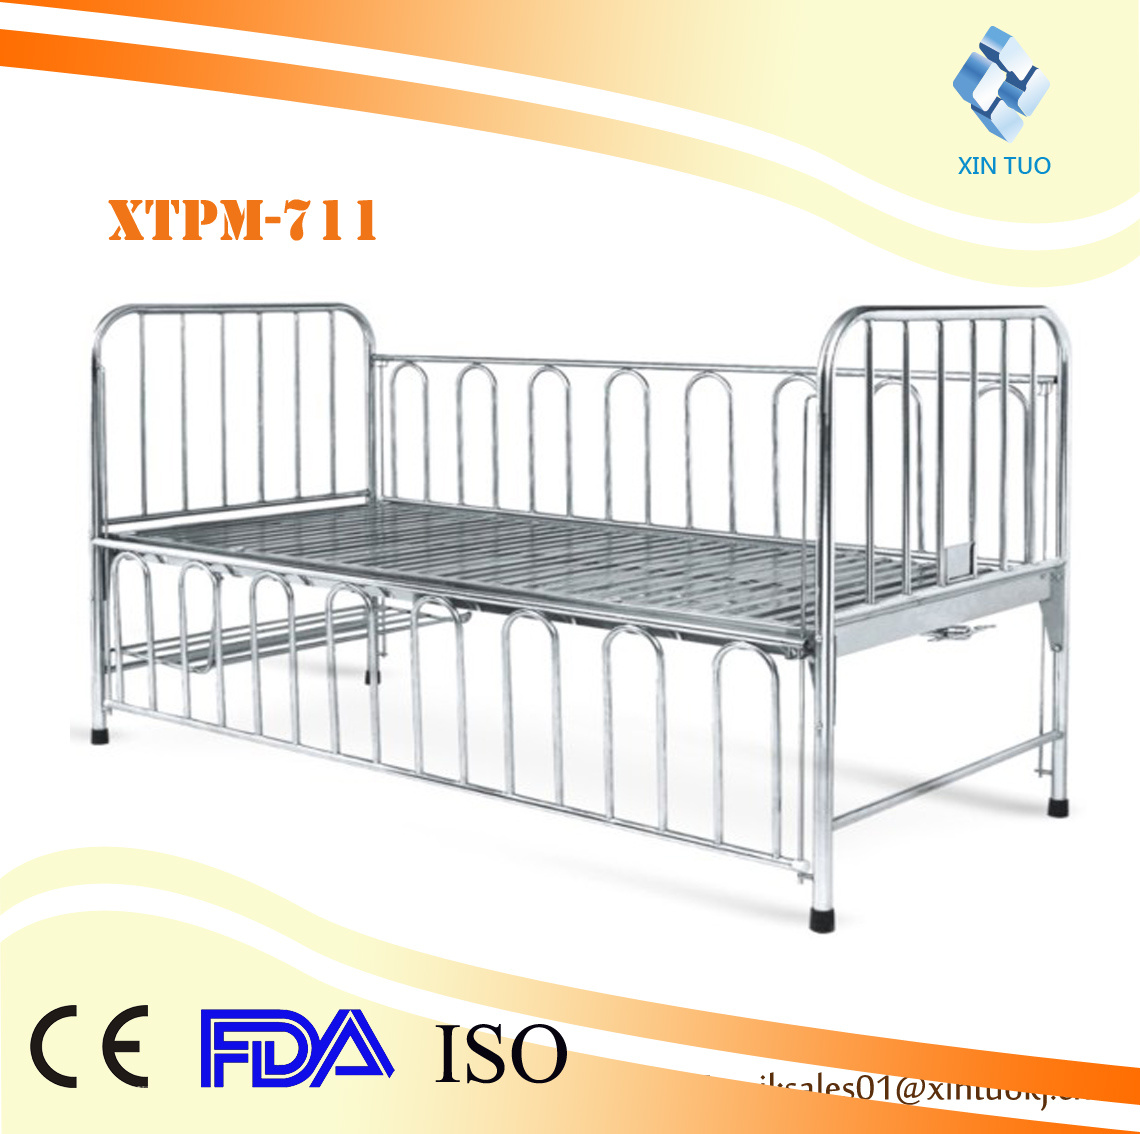 Picture of: China Factory Price Big Boy Adjustable Hospital Kid Beds Children Medical Care Bed China Hospital Bed Children Care Bed